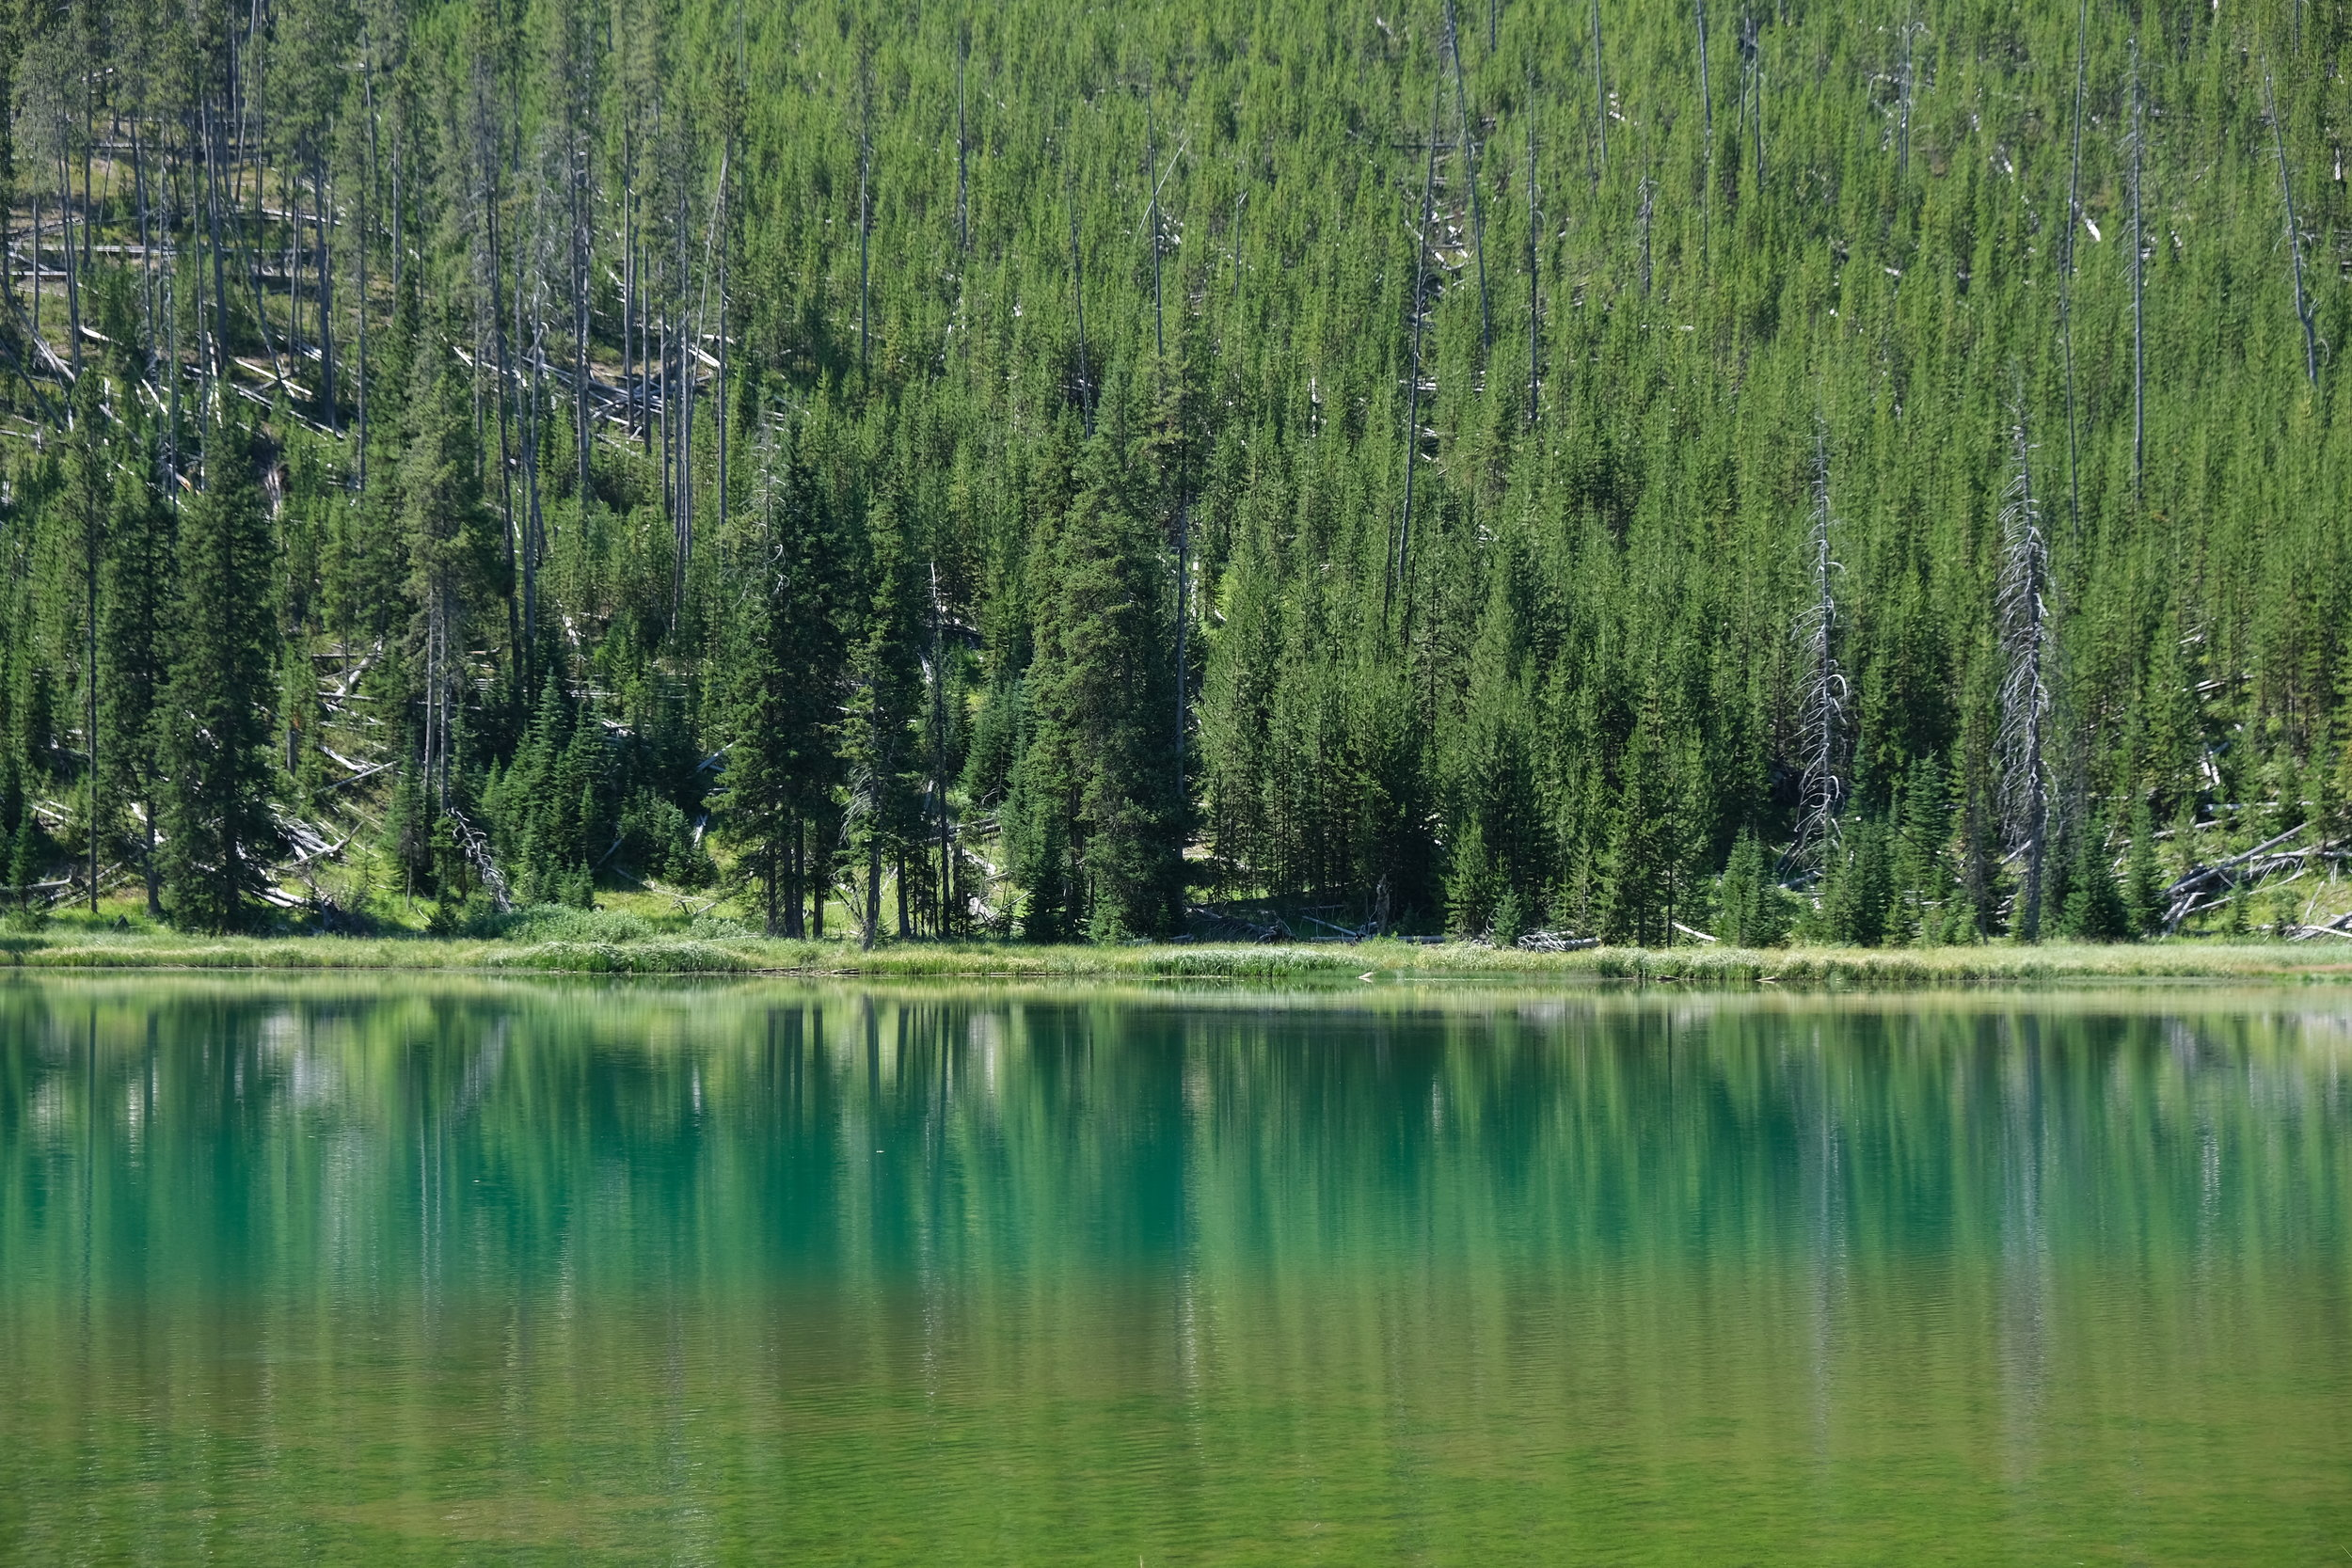 In Yellowstone, even lakes have colour gradients